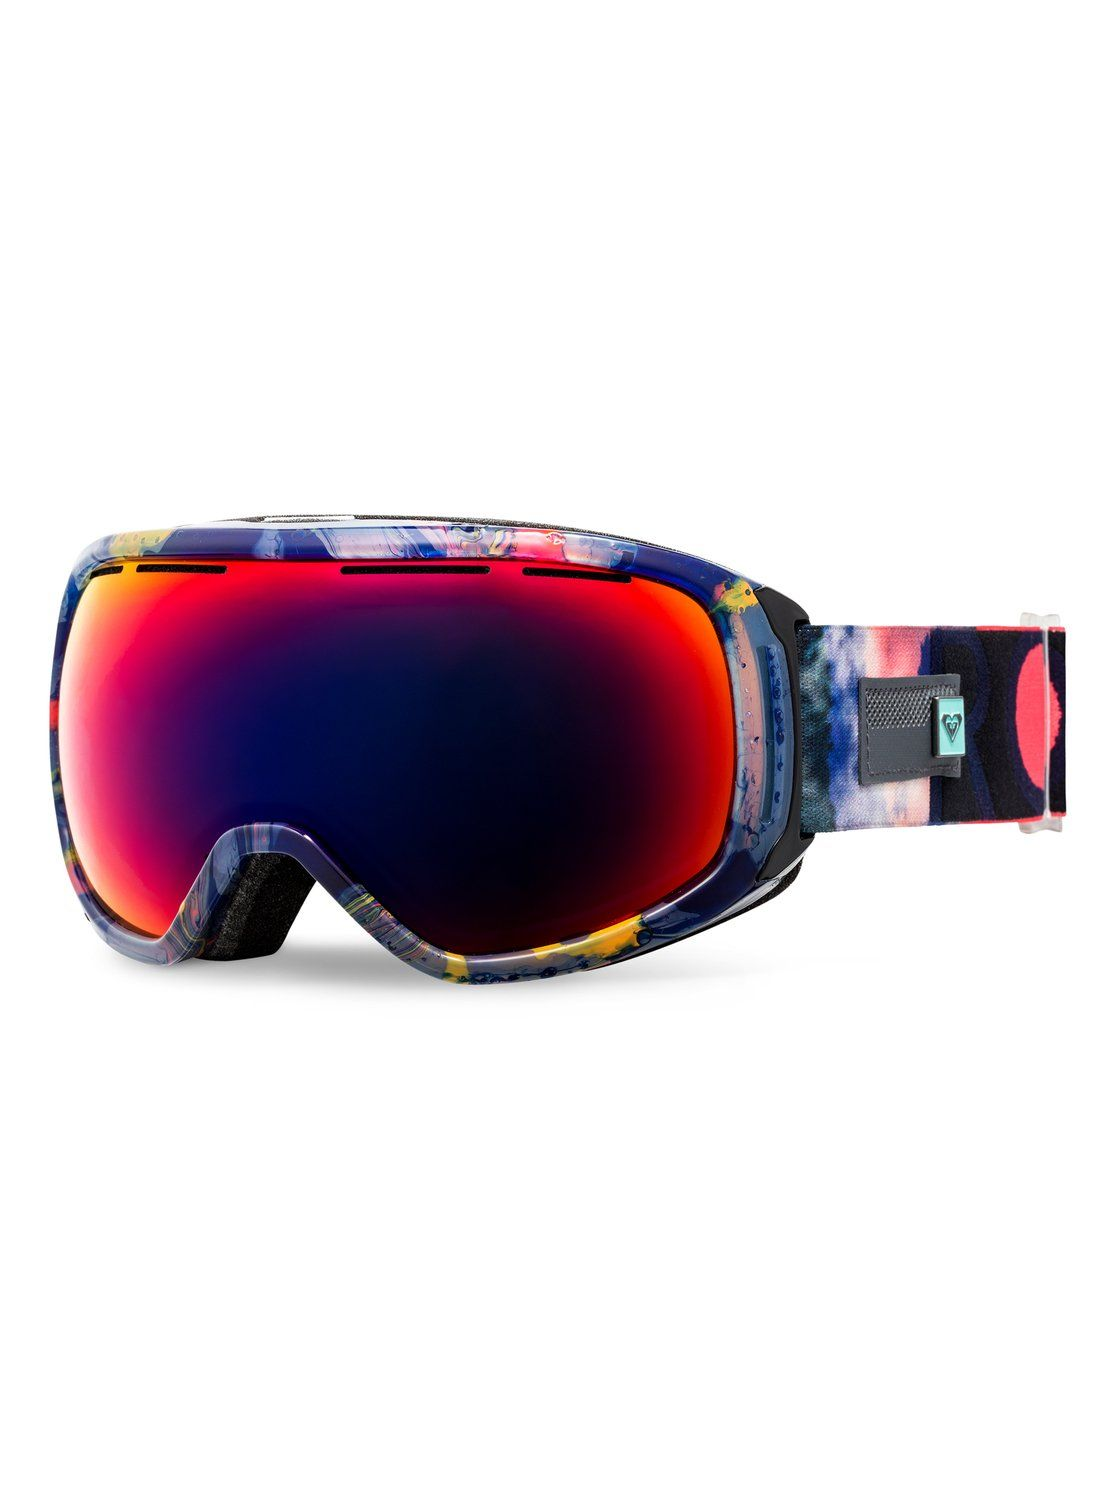 cloud RoxyRockferry Grapefruit Masque De SnowboardskiNeon UpzMqSV